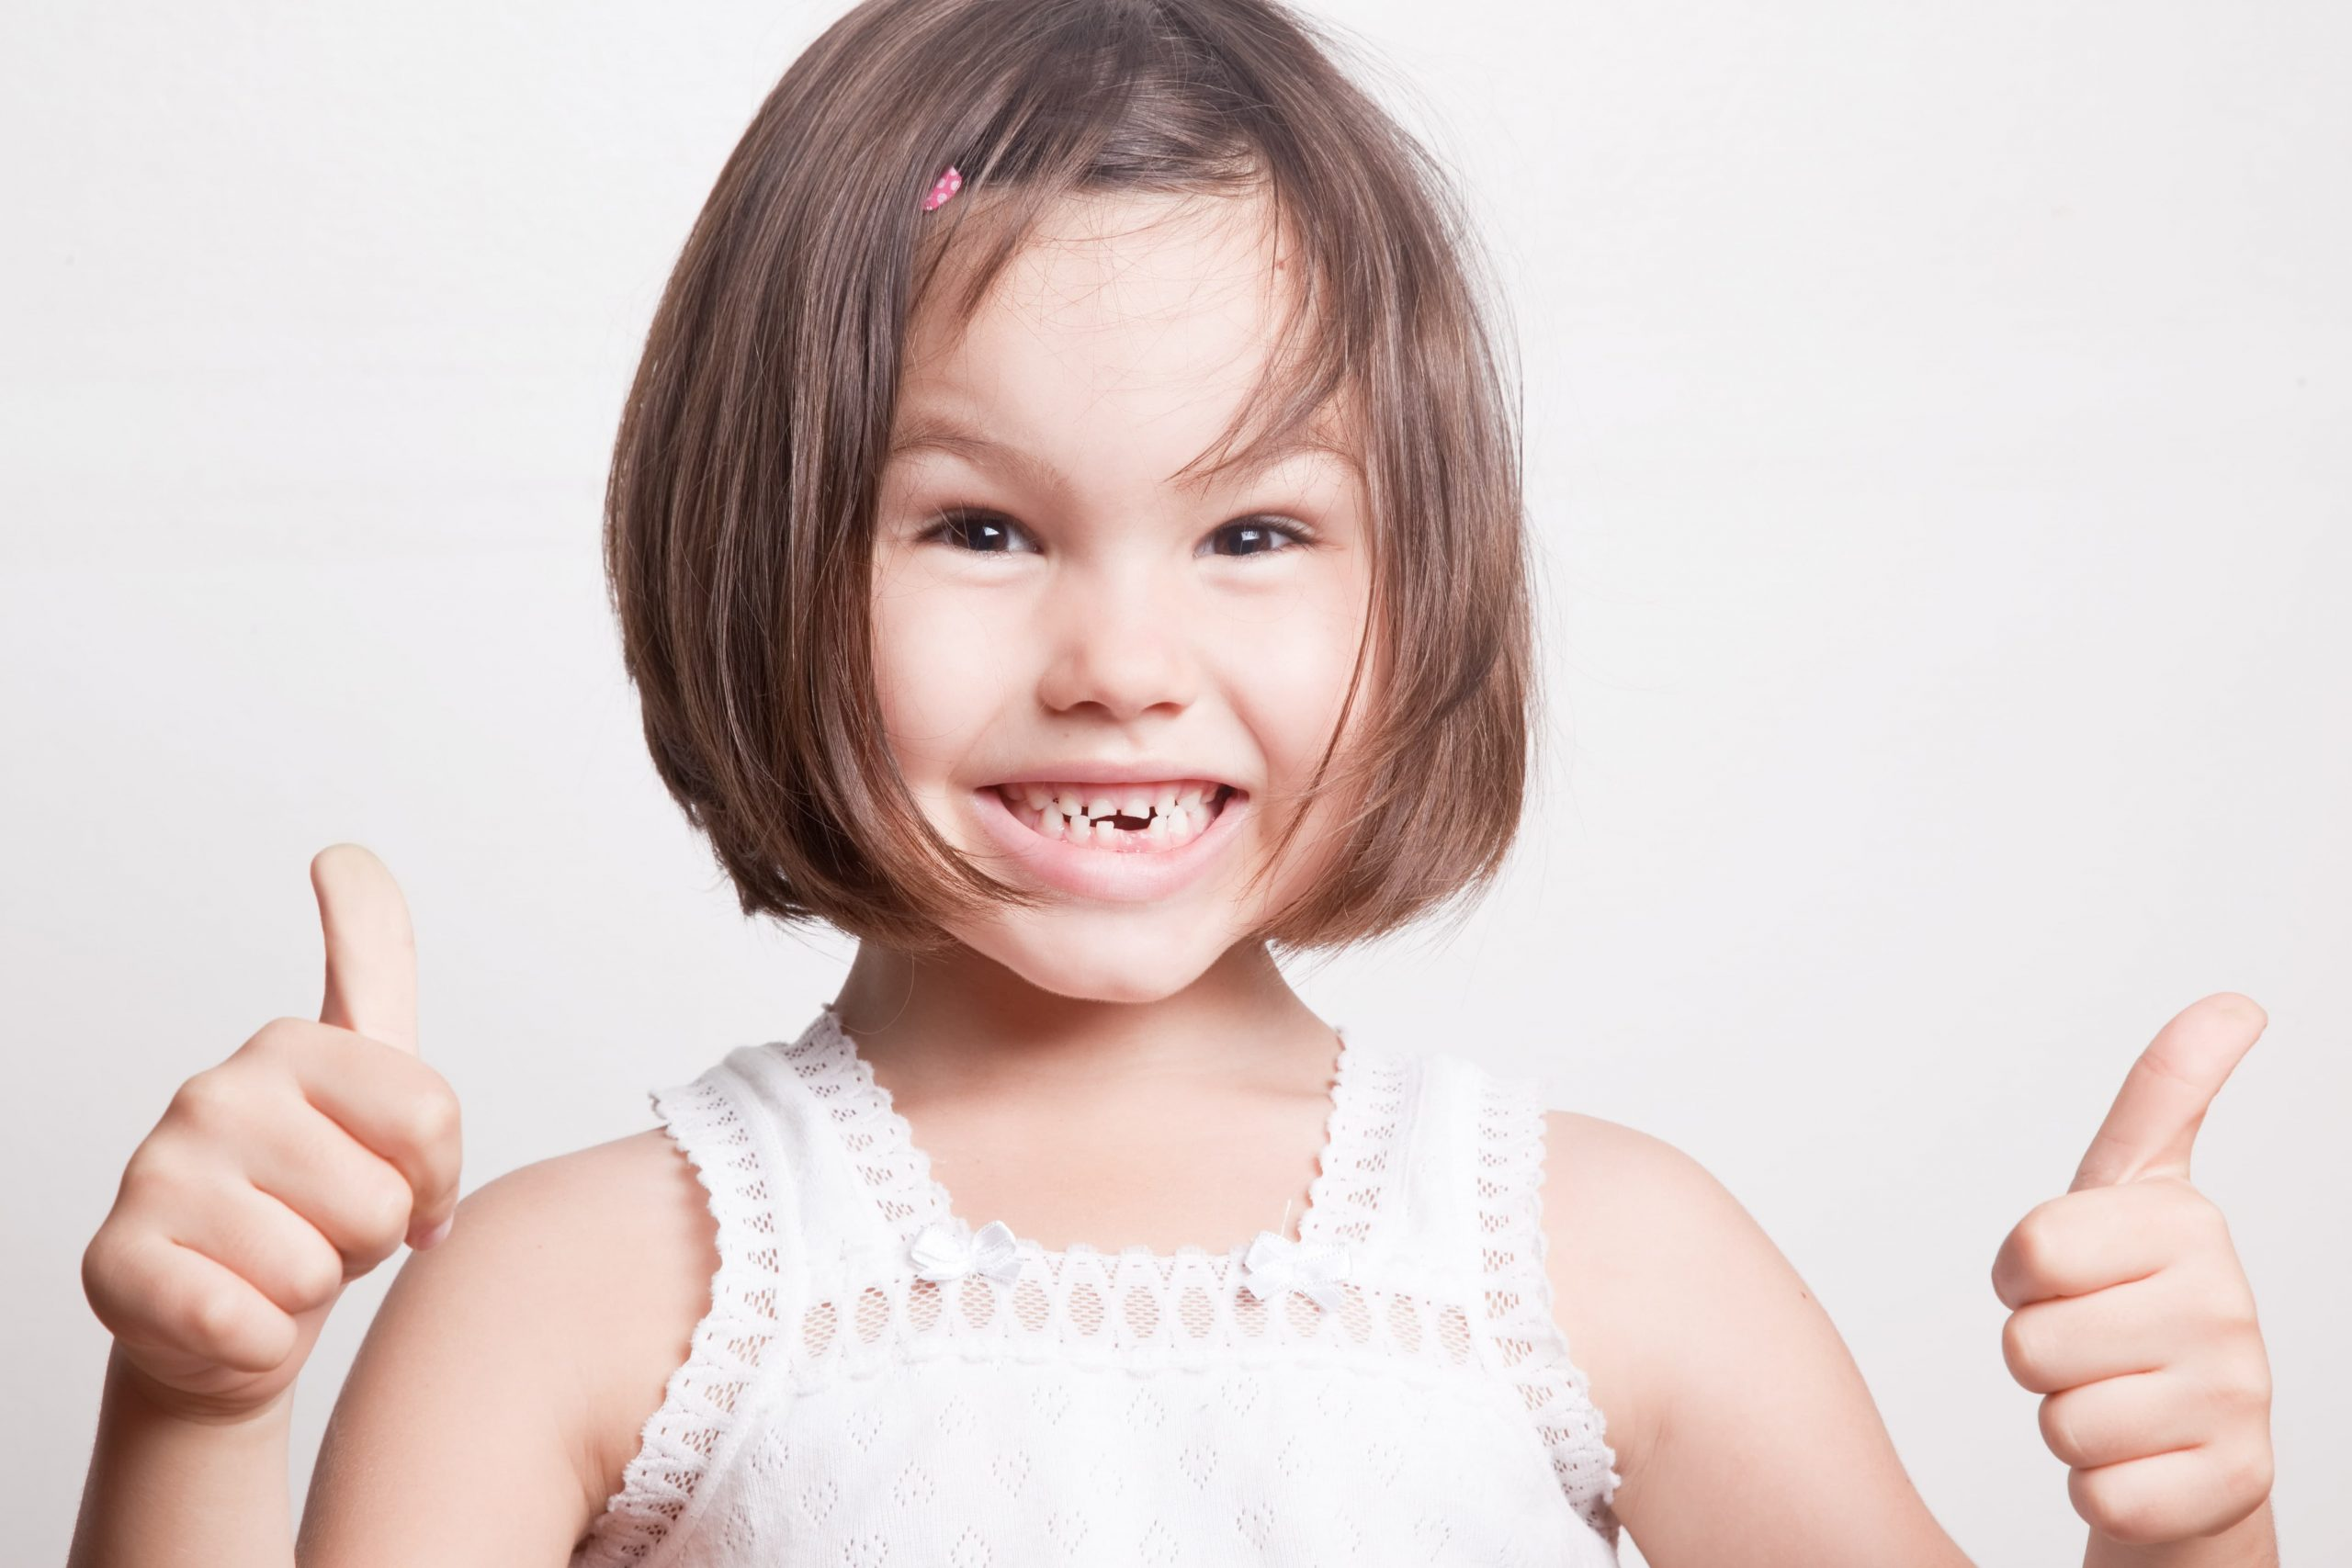 little girl with missing front teeth smiles with two thumbs up